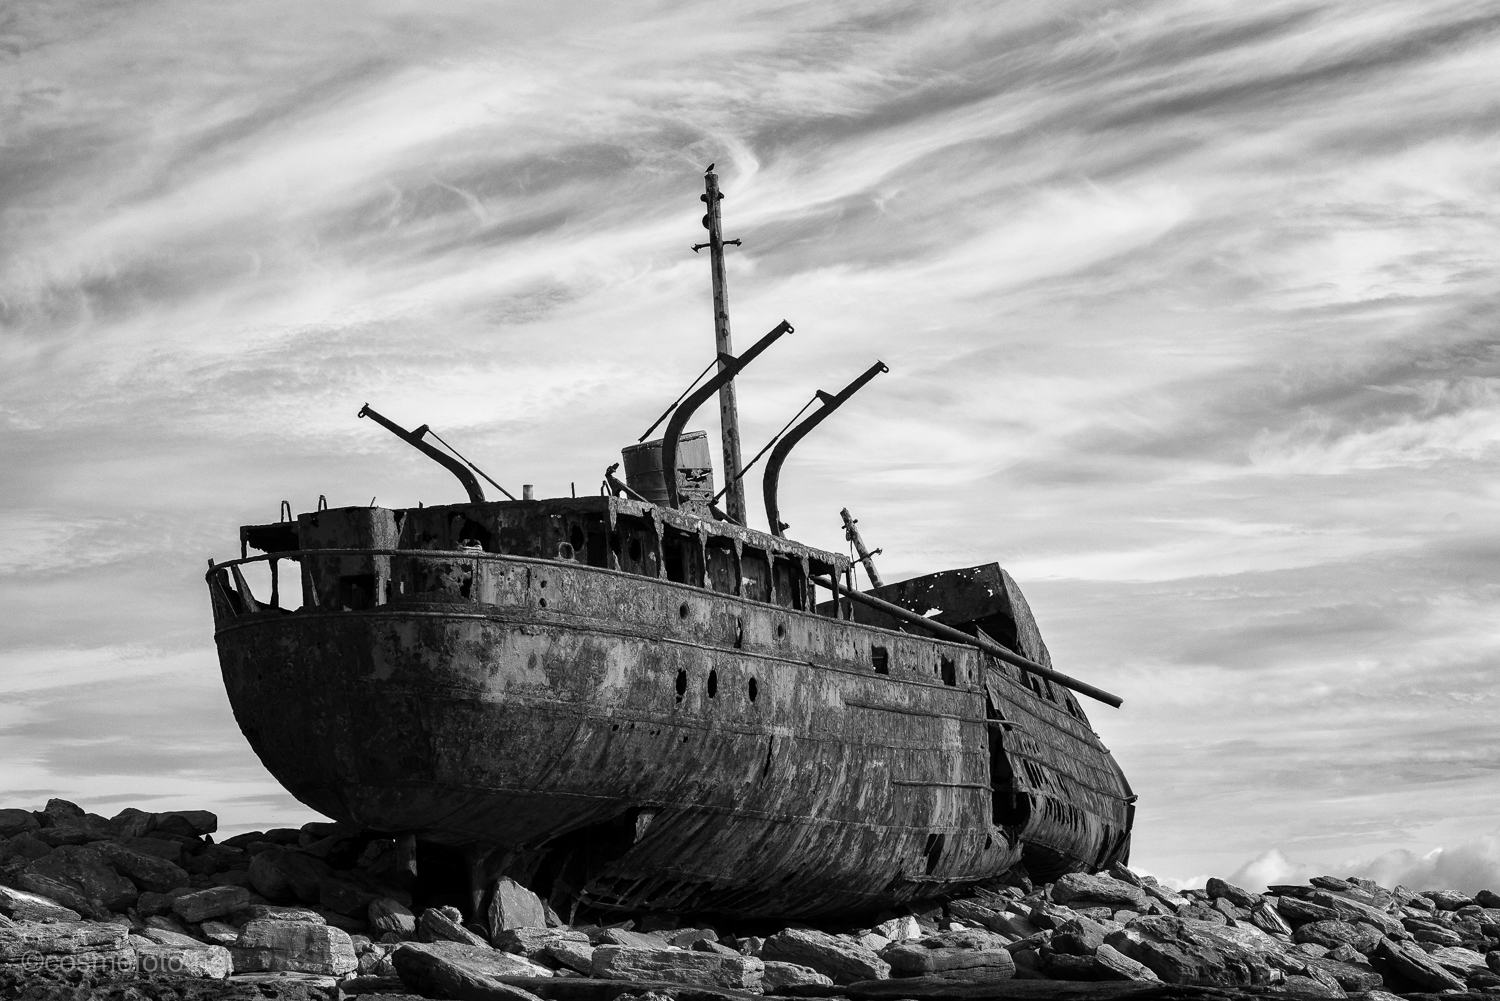 The wreck features in the opening credits of the television series, Father Ted.